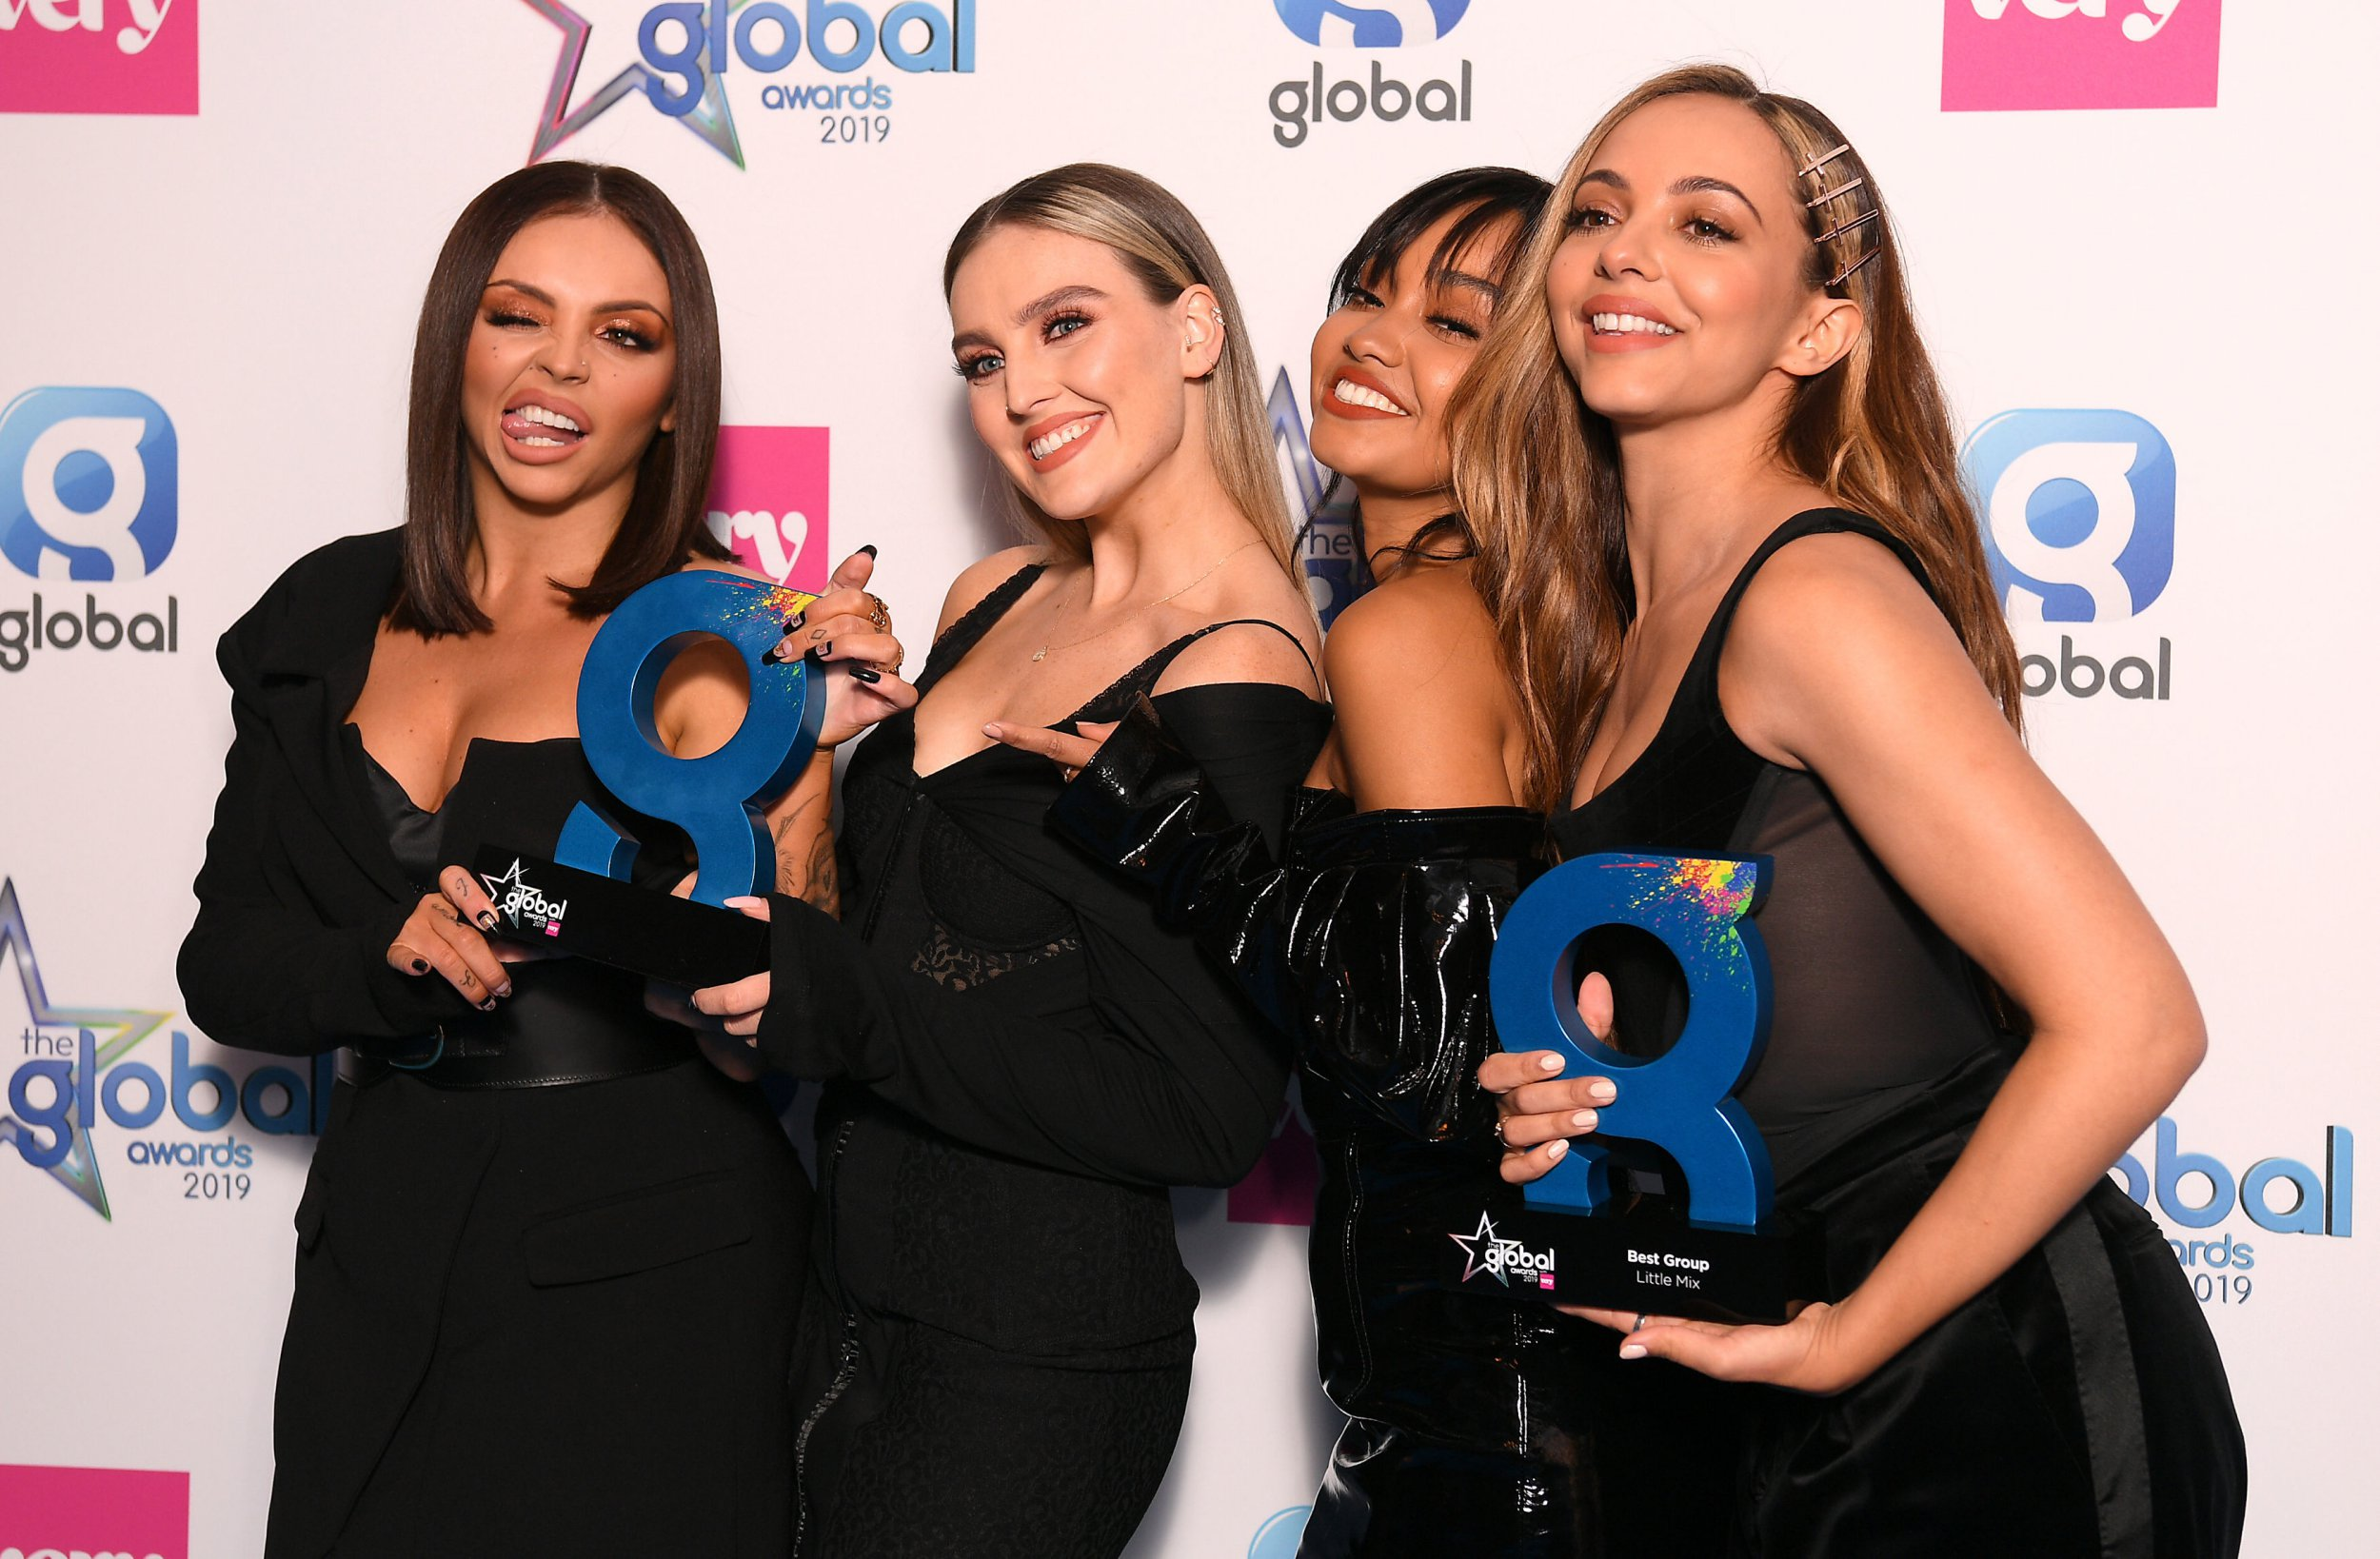 Jesy Nelson, Perrie Edwards, Leigh-Anne Pinnock, and Jade Thirlwall of Little Mix wins the Best Song and Best Group award at The Global Awards 2019 with Very.co.uk held at London's Eventim Apollo Hammersmith. PRESS ASSOCIATION Photo. Picture date: Thursday March 7, 2019. See PA Story SHOWBIZ Global. Photo credit should read: Scott Garfitt/PA Wire